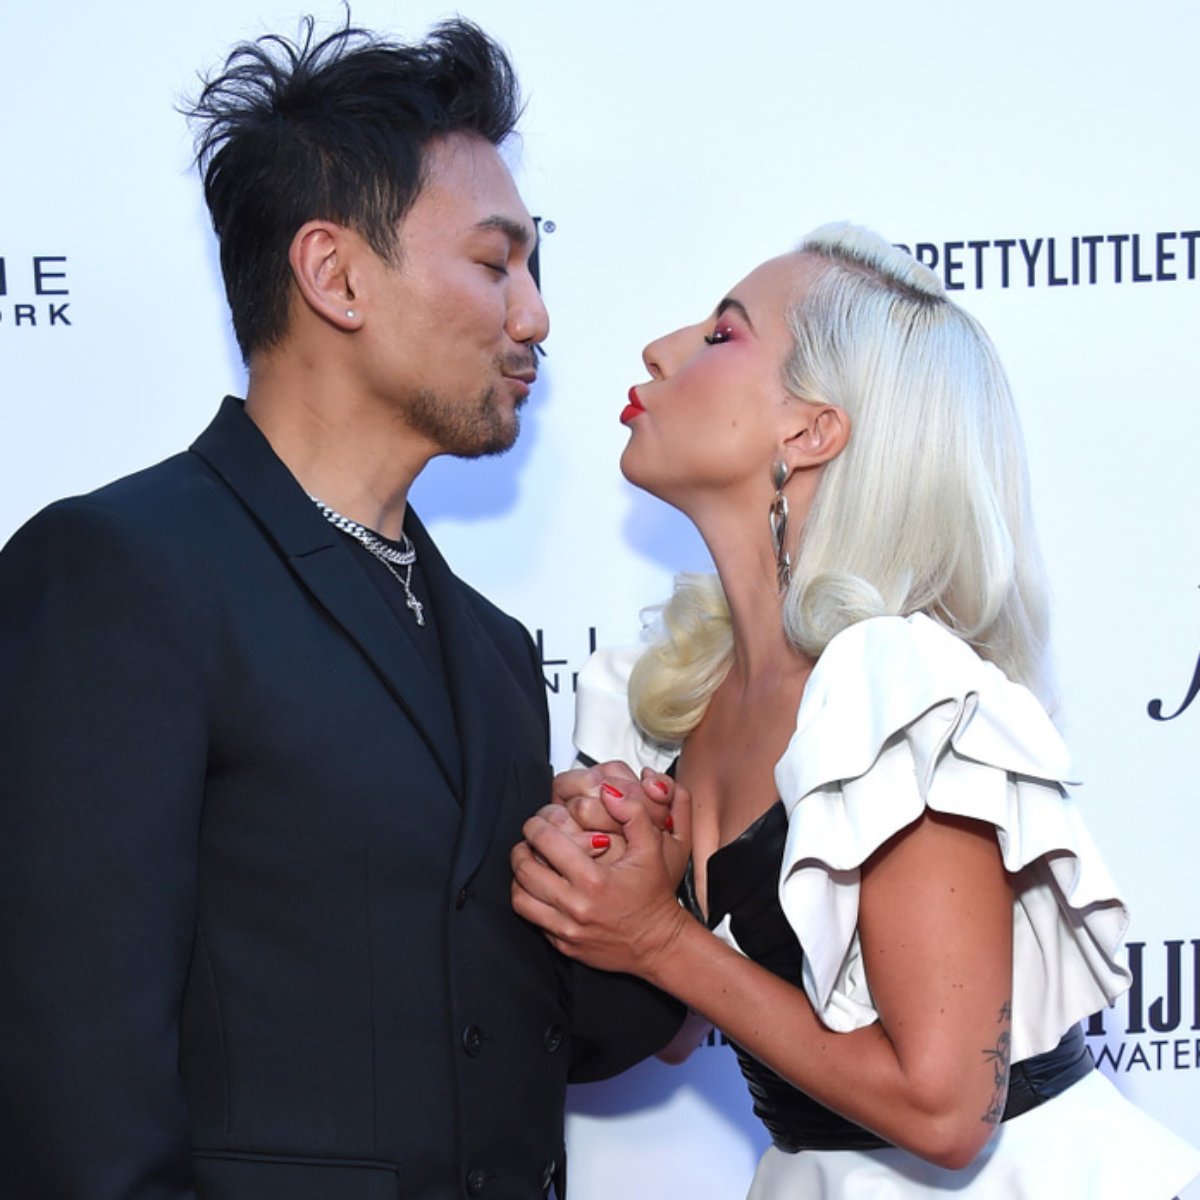 Lady Gaga and Fredric Aspiras award show